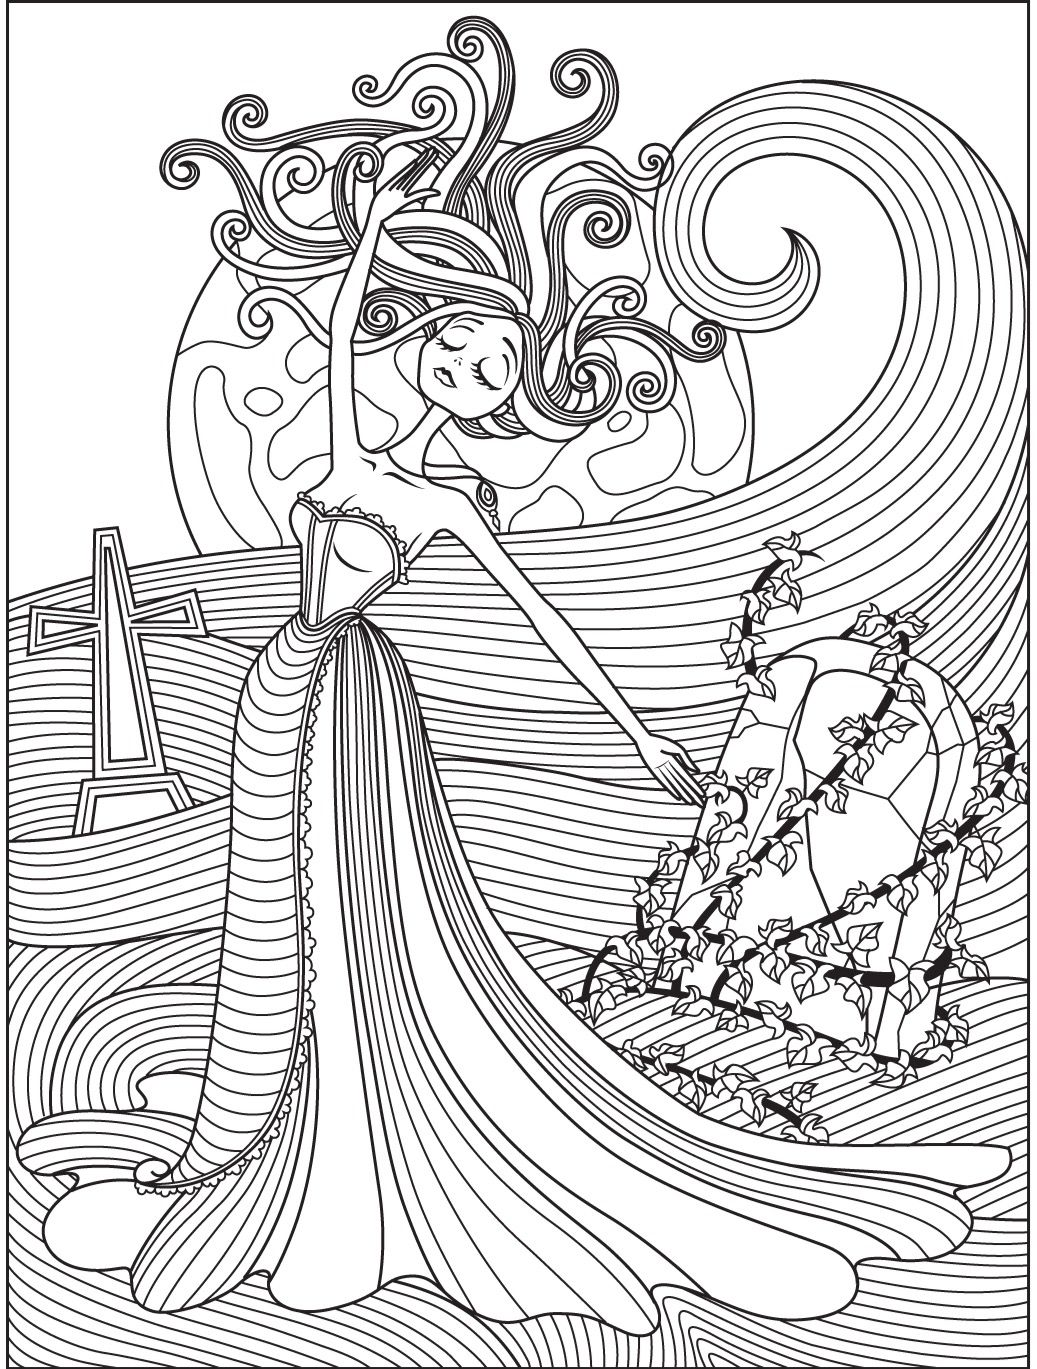 Halloween coloring page | Colorish: free coloring app for adults ...